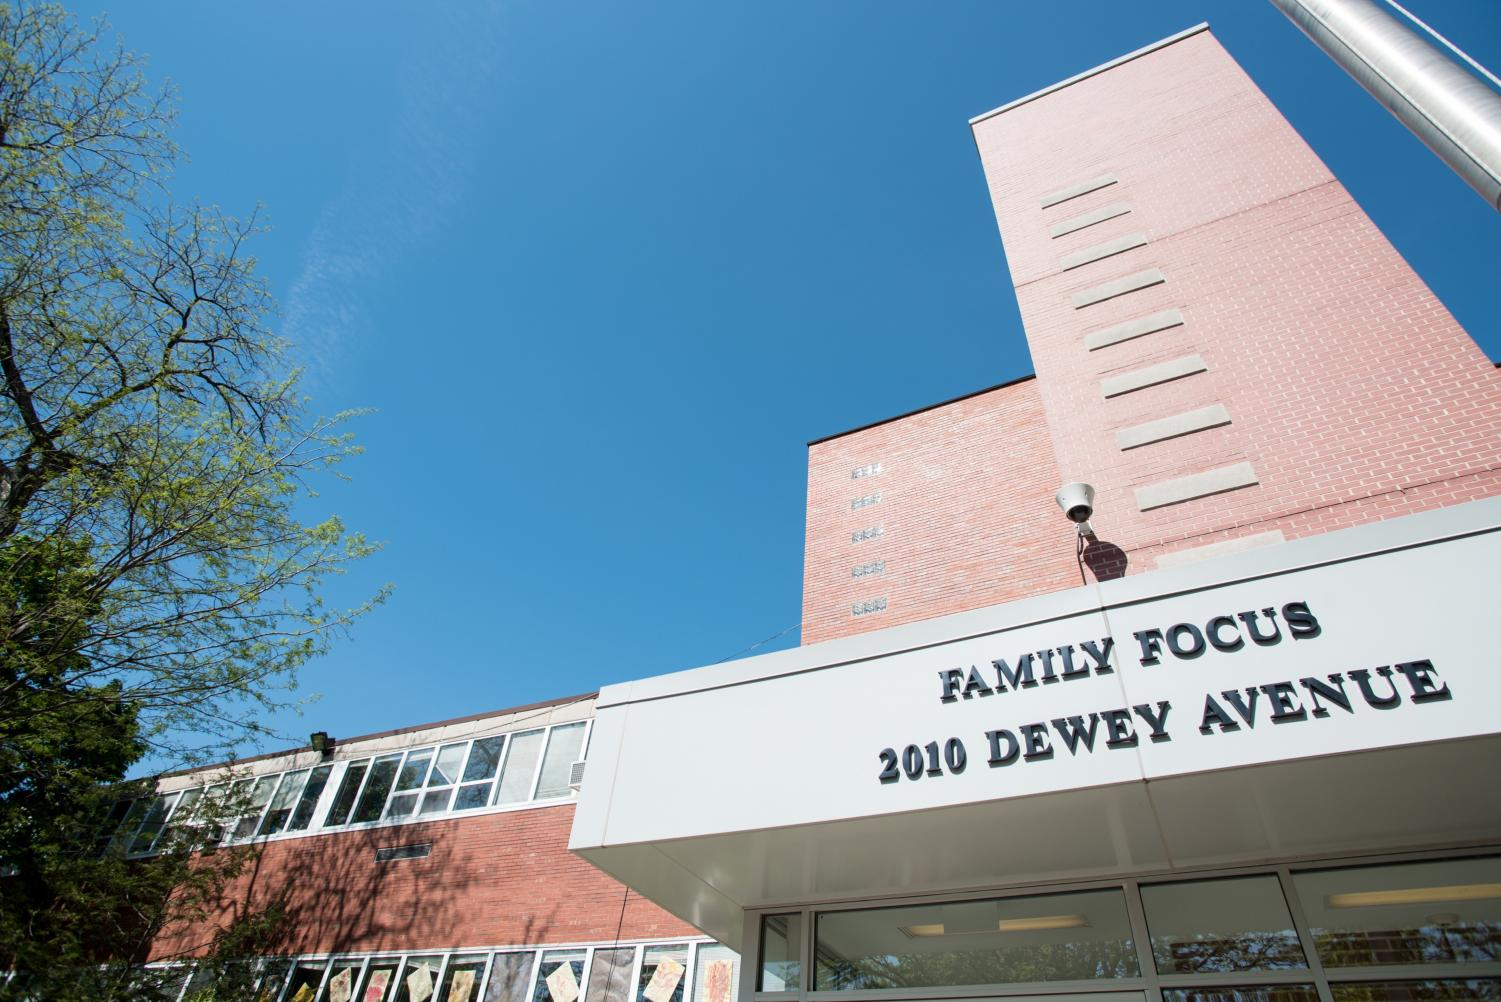 Family Focus, 2010 Dewey Ave. The Evanston Preservation Commission voted Tuesday to designate the Family Focus building, which previously housed the Foster School, as an Evanston landmark.